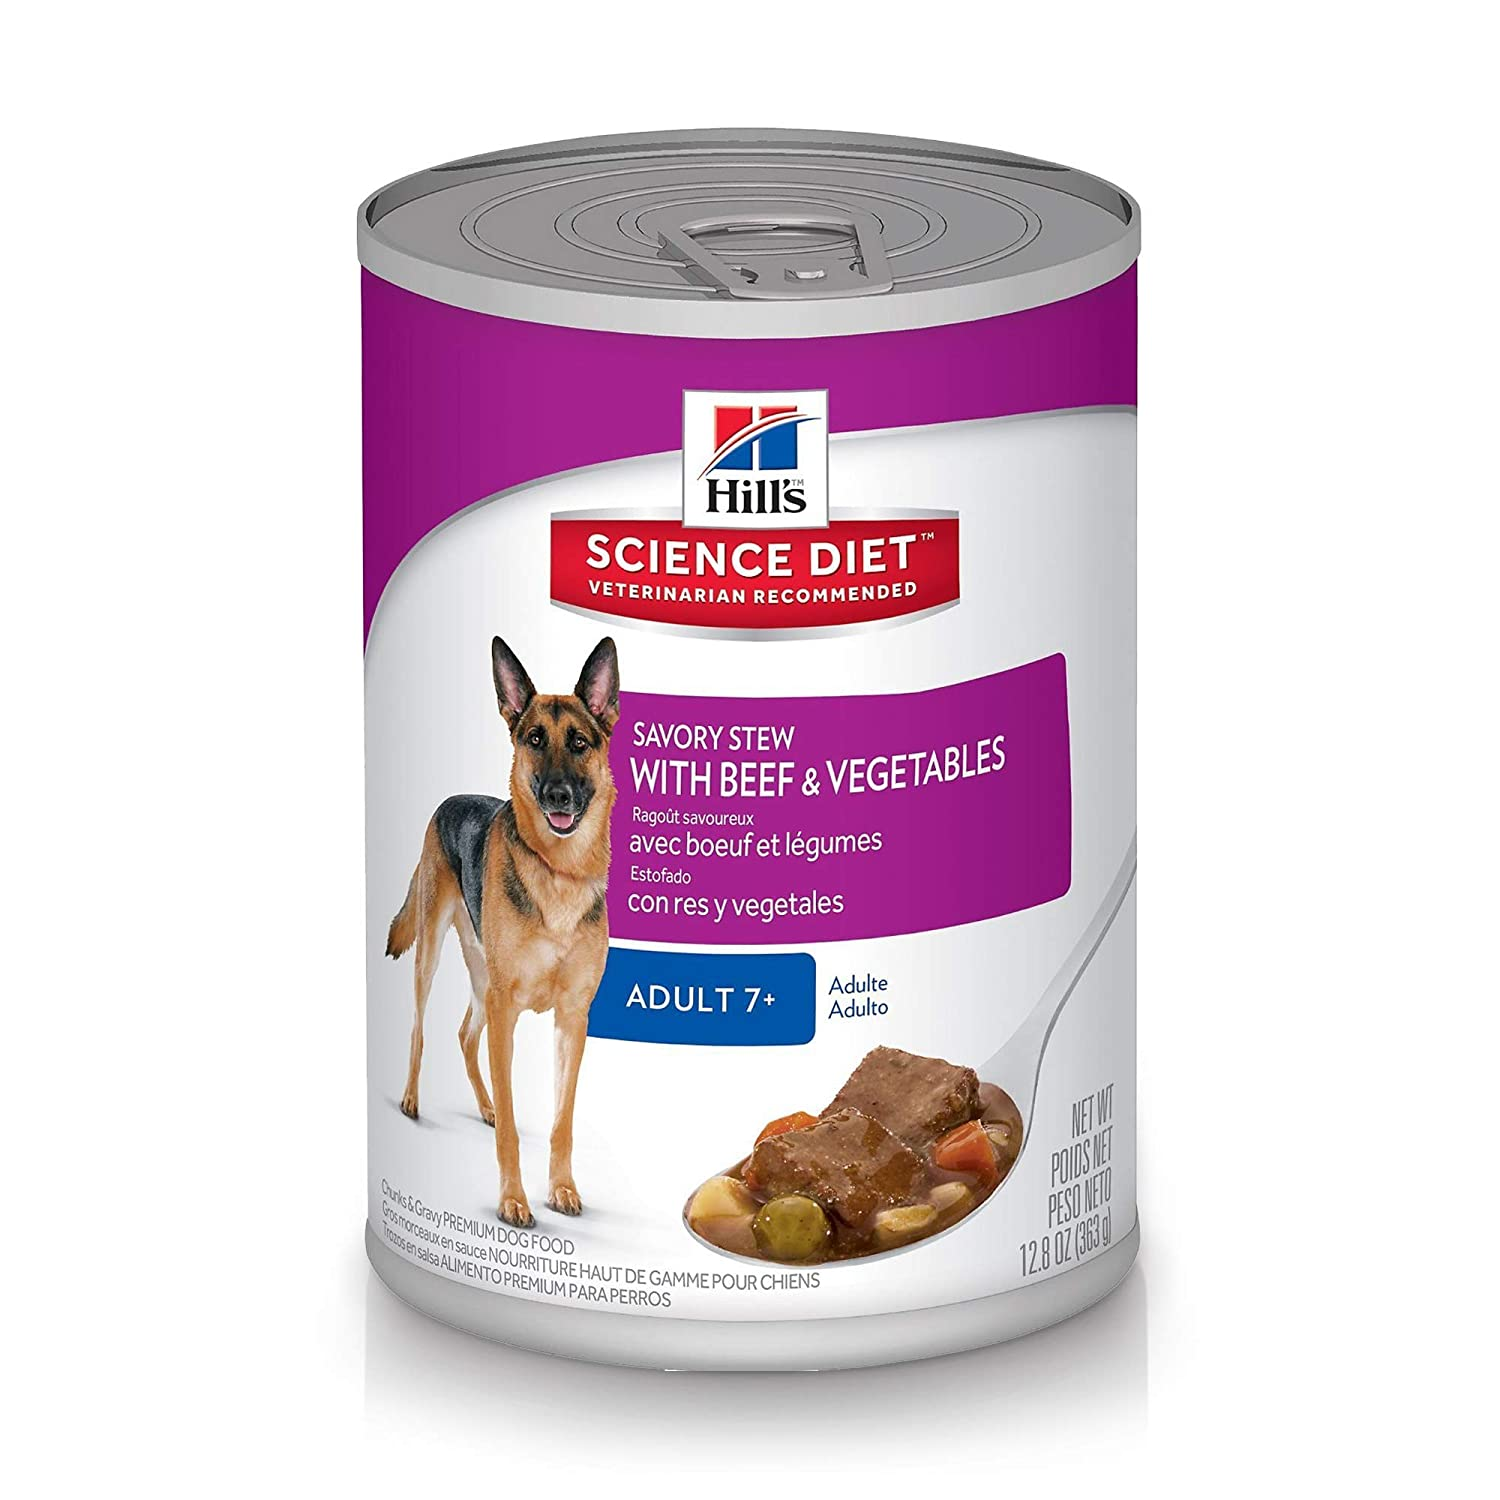 363g, 12 Pack Hill's Science Diet Senior Wet Dog Food, Adult 7+ Savory Stew with Beef & Vegetables Canned Dog Food, 363g, 12 Pack